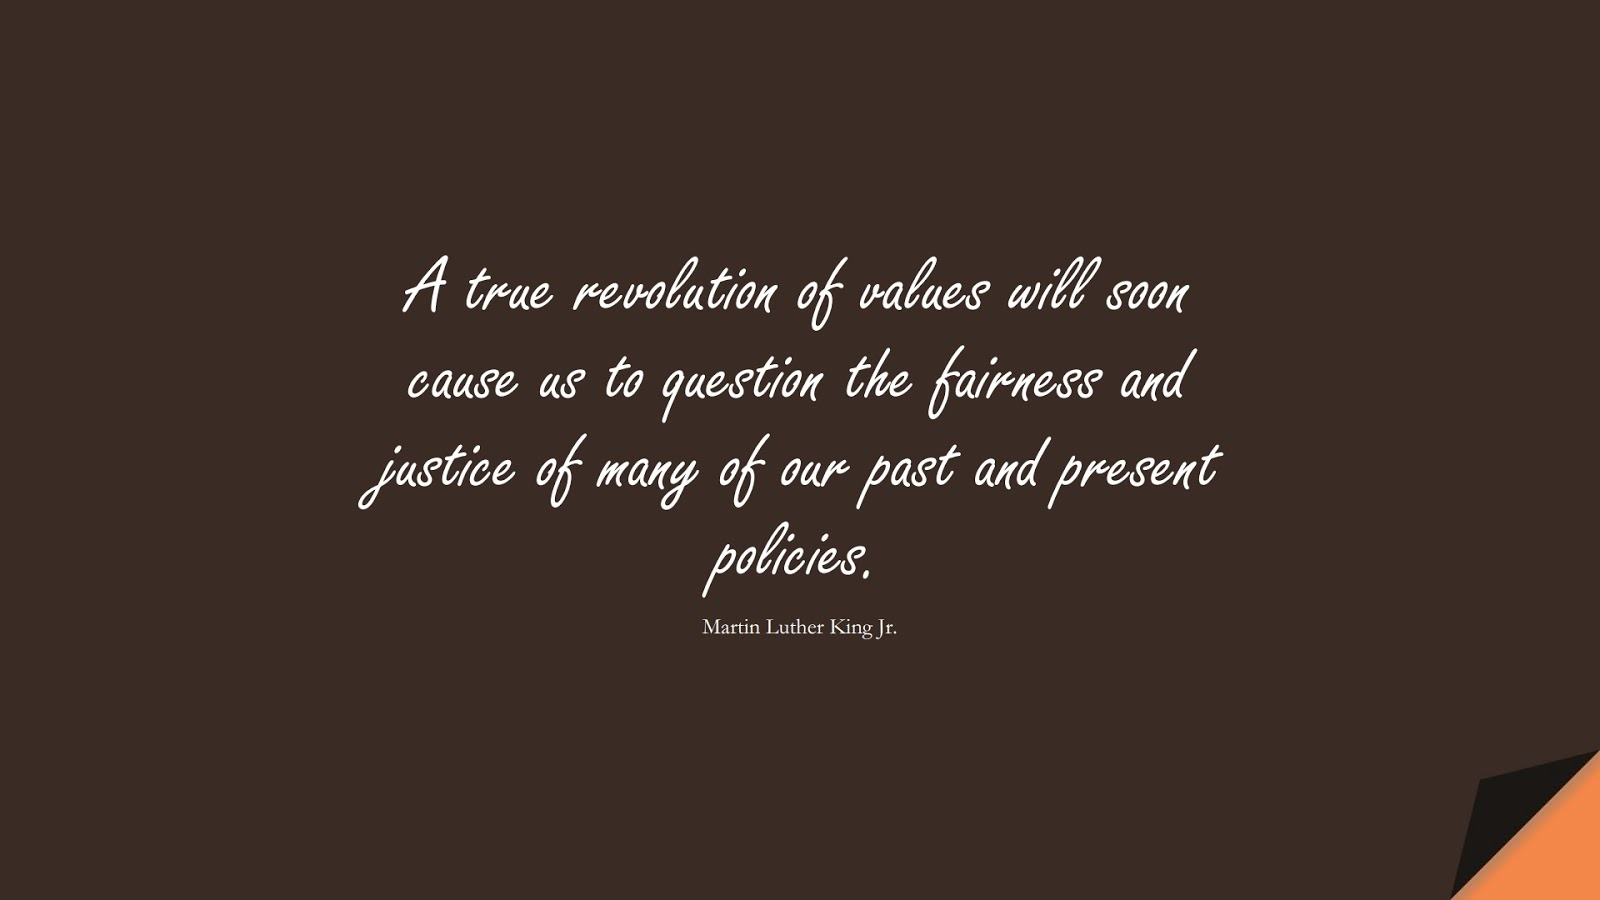 A true revolution of values will soon cause us to question the fairness and justice of many of our past and present policies. (Martin Luther King Jr.);  #MartinLutherKingJrQuotes